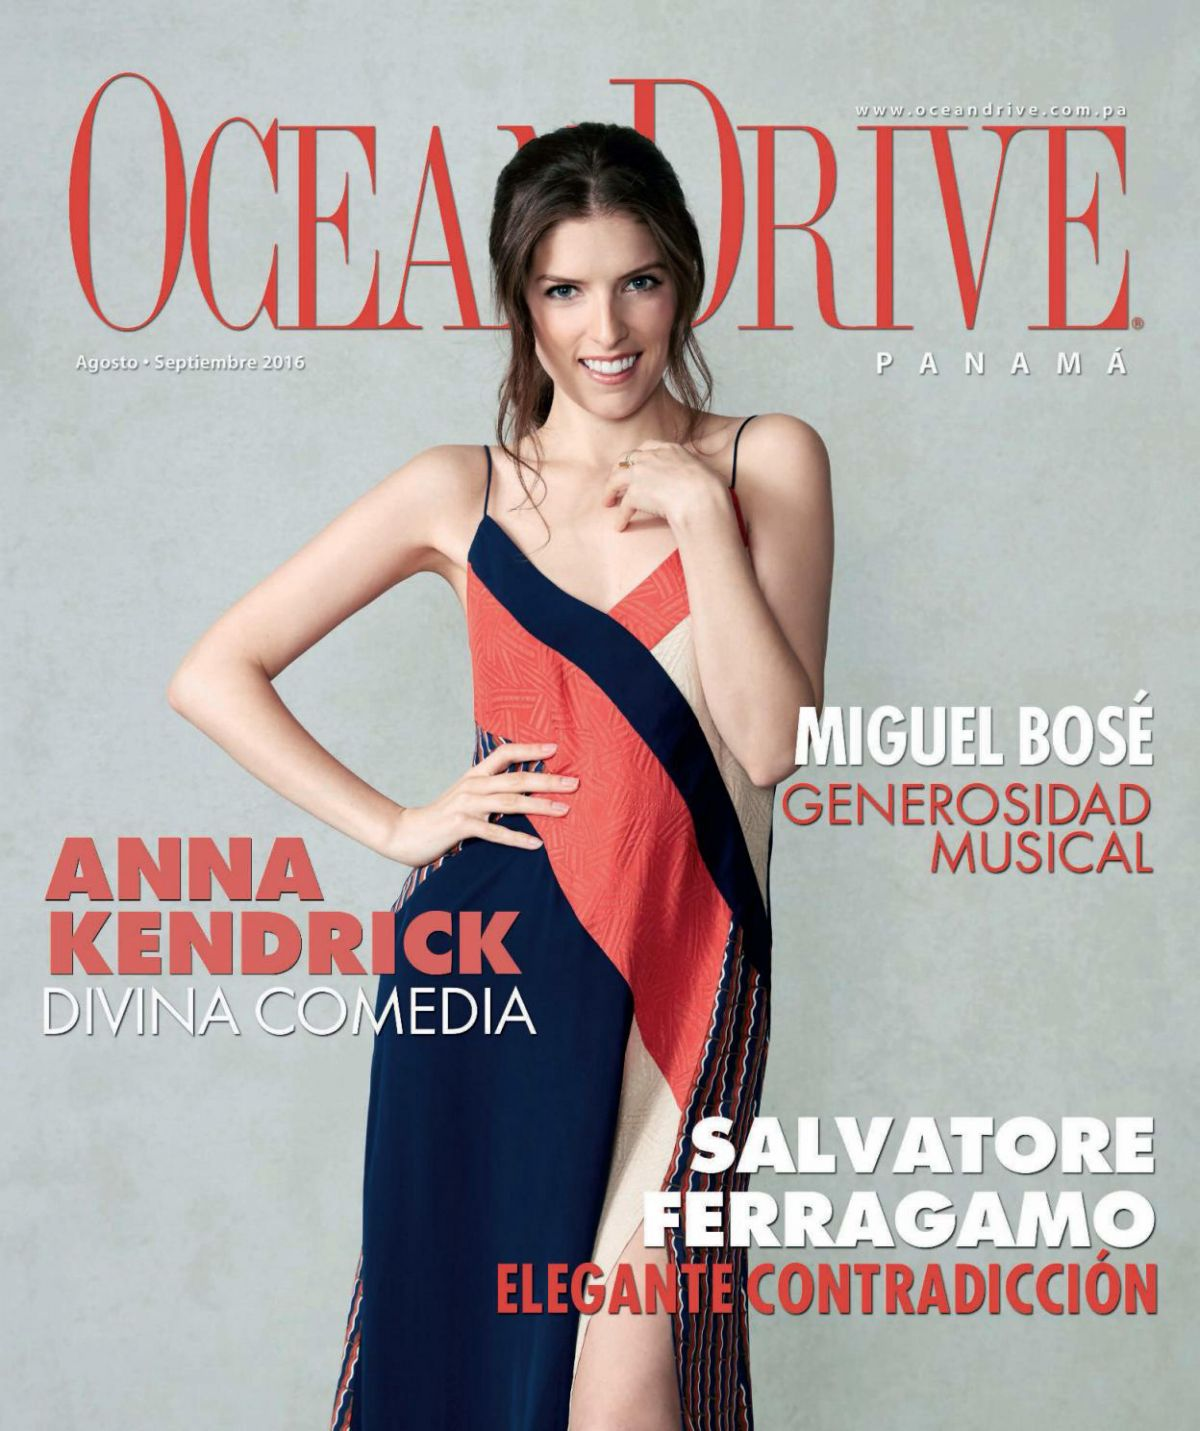 ANNA KENDRICK In Ocean Drive Magazine Panama August September 2016